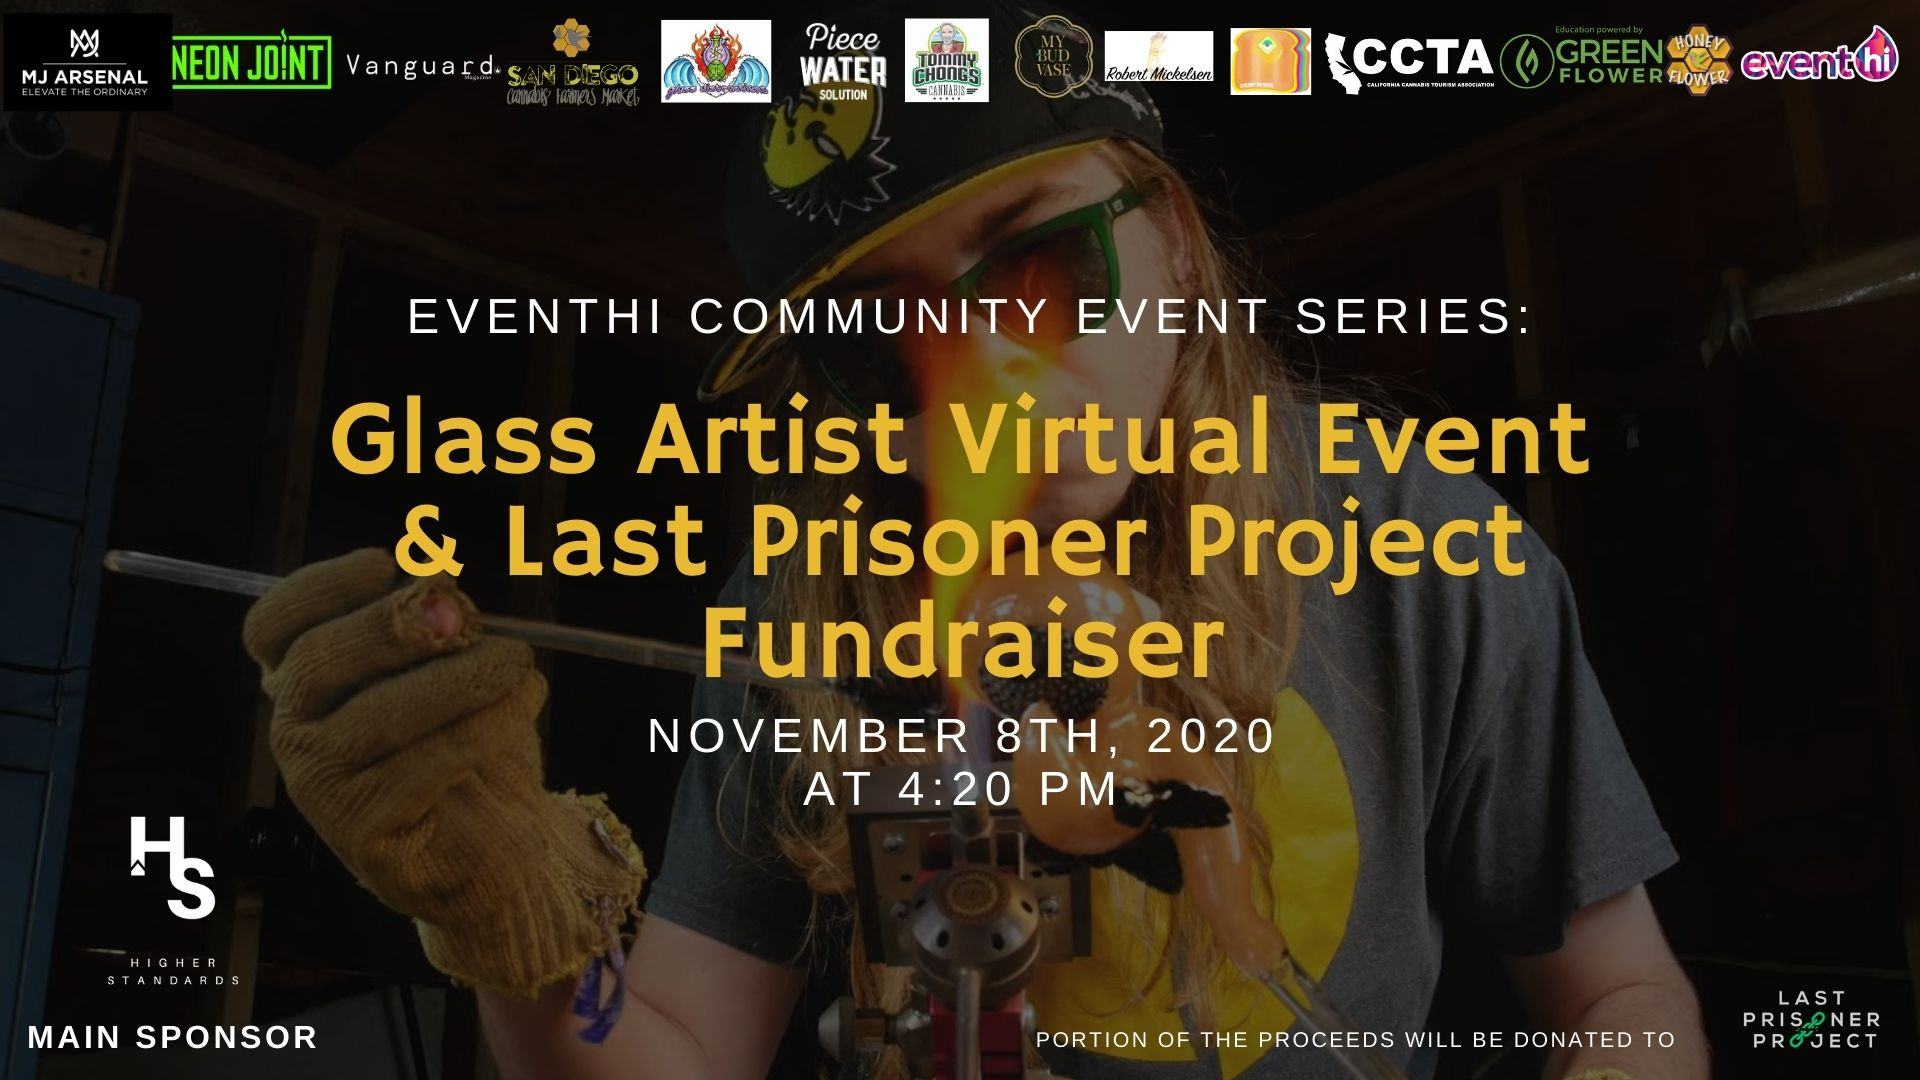 EventHi Community Event Series: Glass Art Virtual Event and Last Prisoner Project Fundraiser